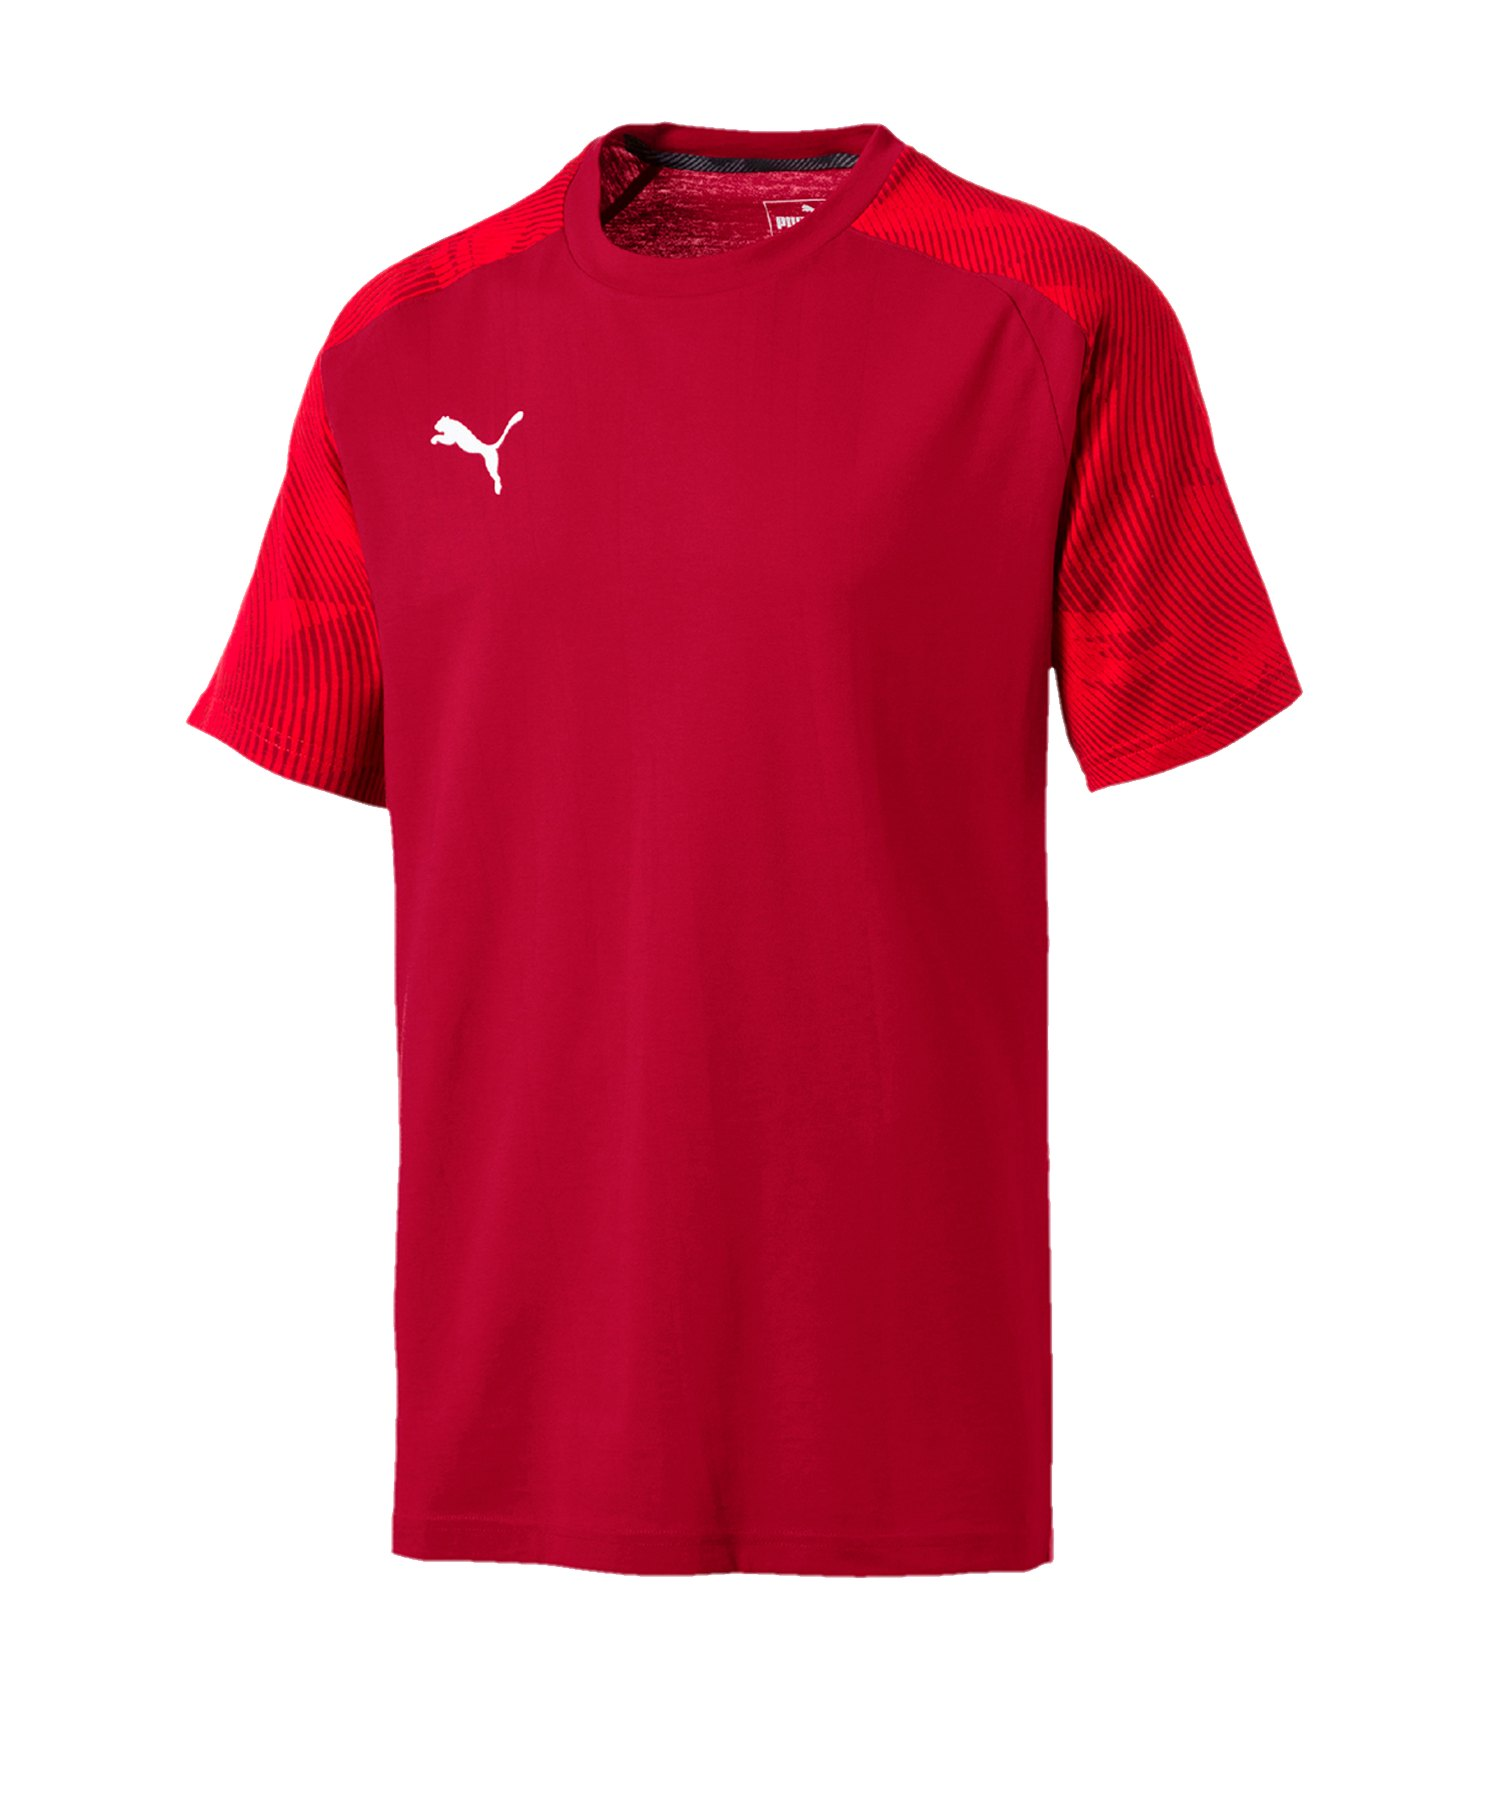 PUMA CUP Sideline T-Shirt Rot F01 - rot